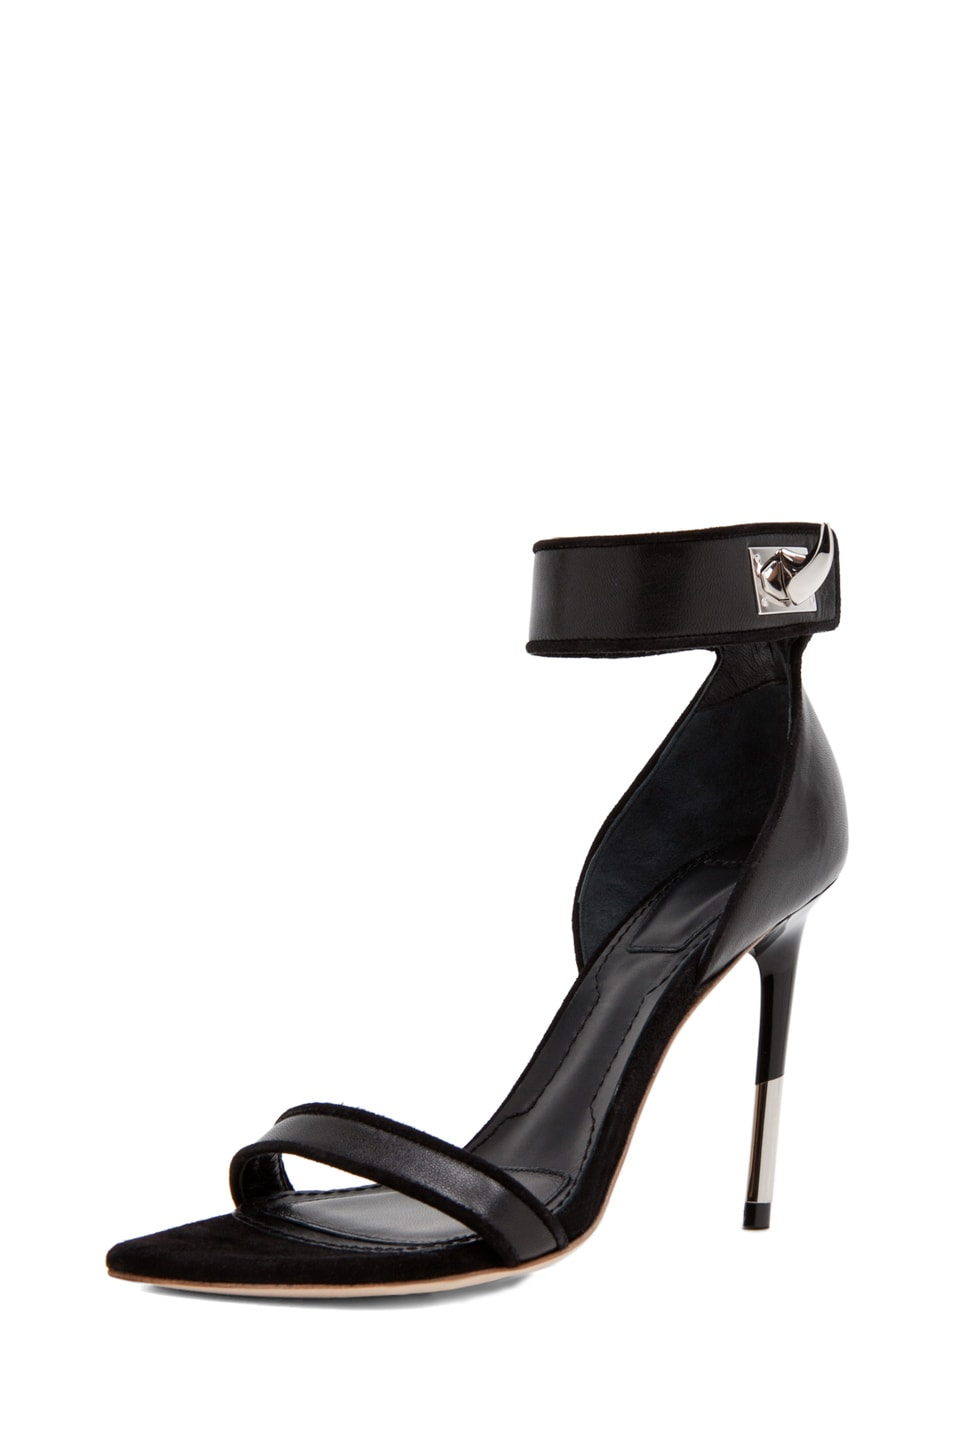 Image 2 of GIVENCHY Guerra Nappa Leather Heel in Black